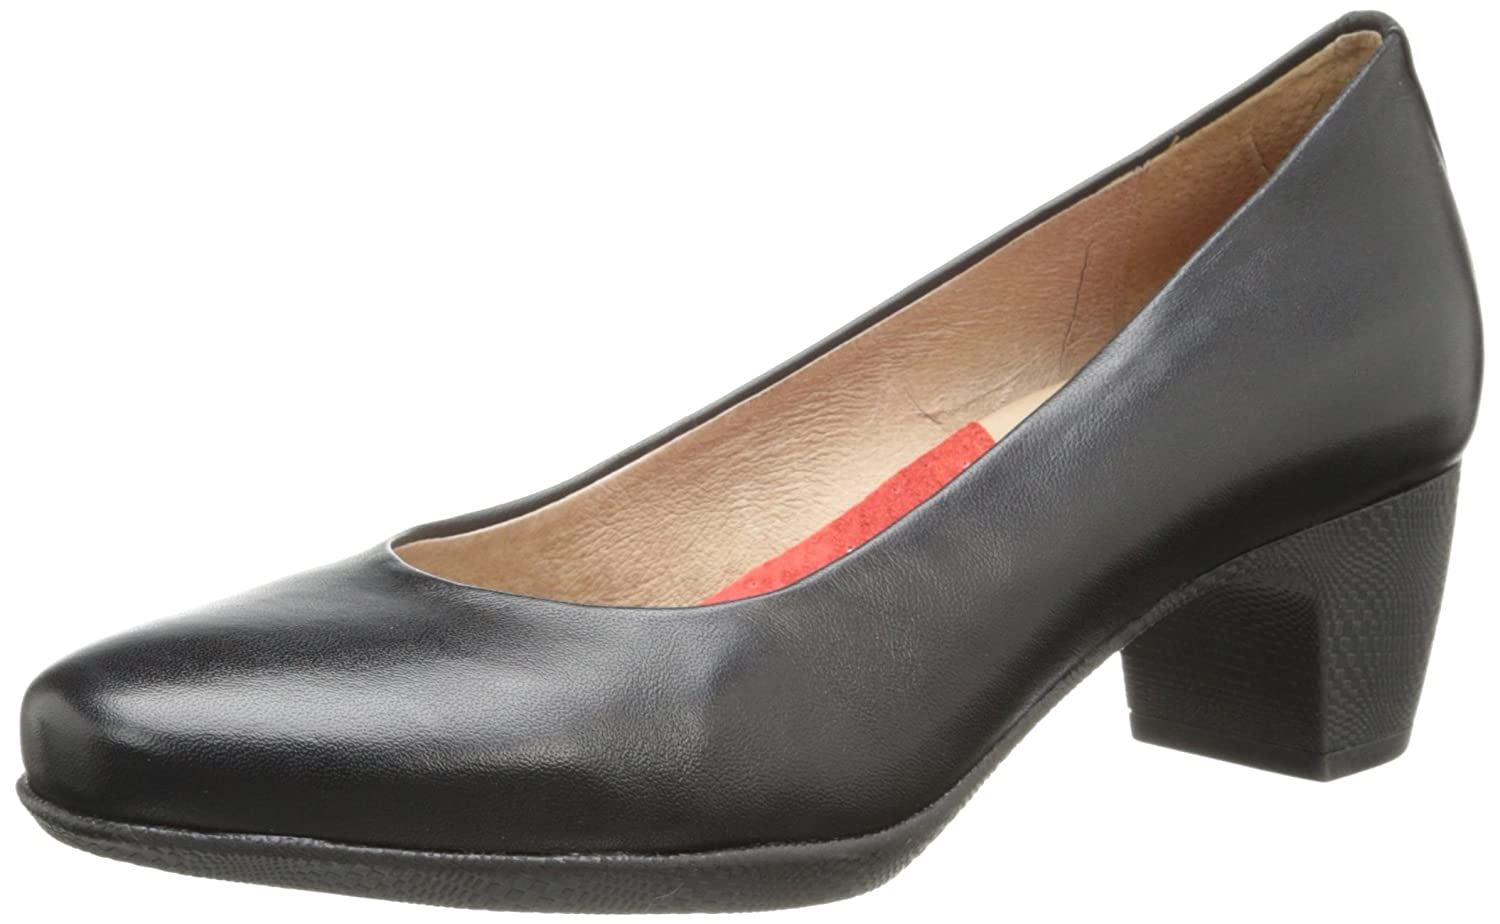 SoftWalk Women's Imperial Dress Pump B00HQLP8TY 7 N US|Black